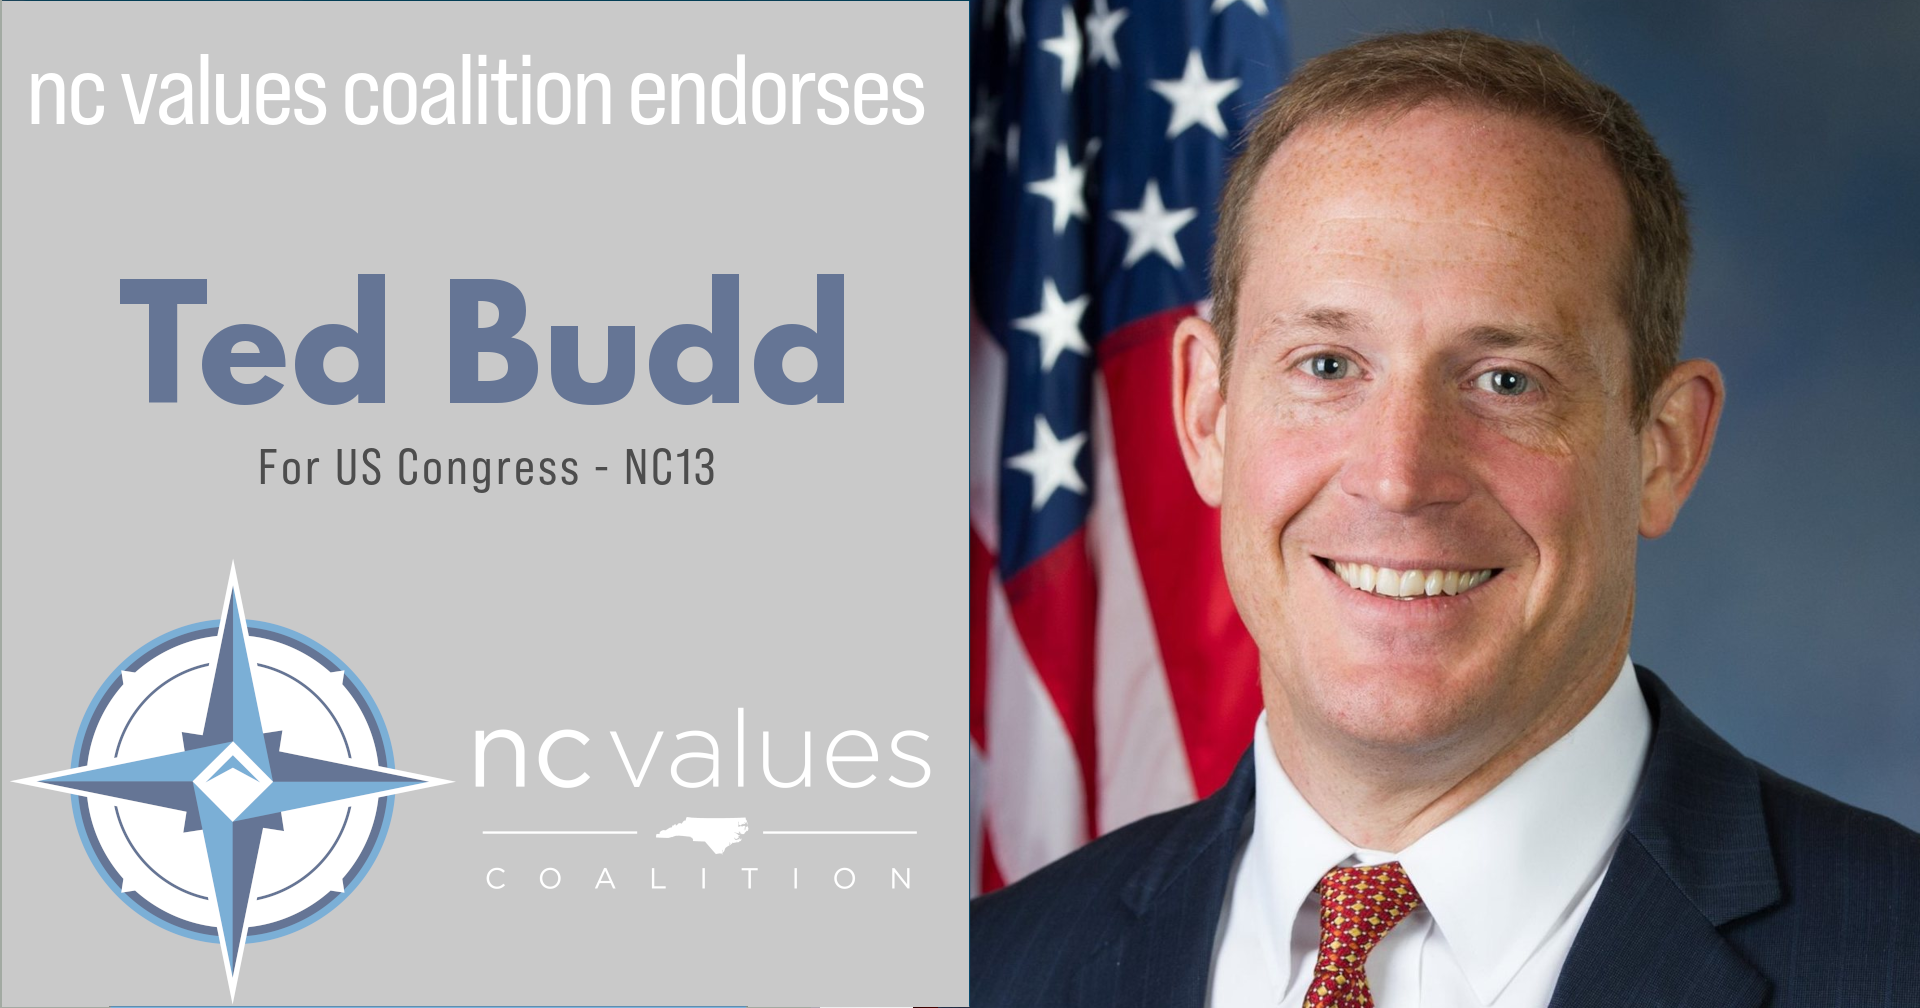 Ted Budd for Congresss